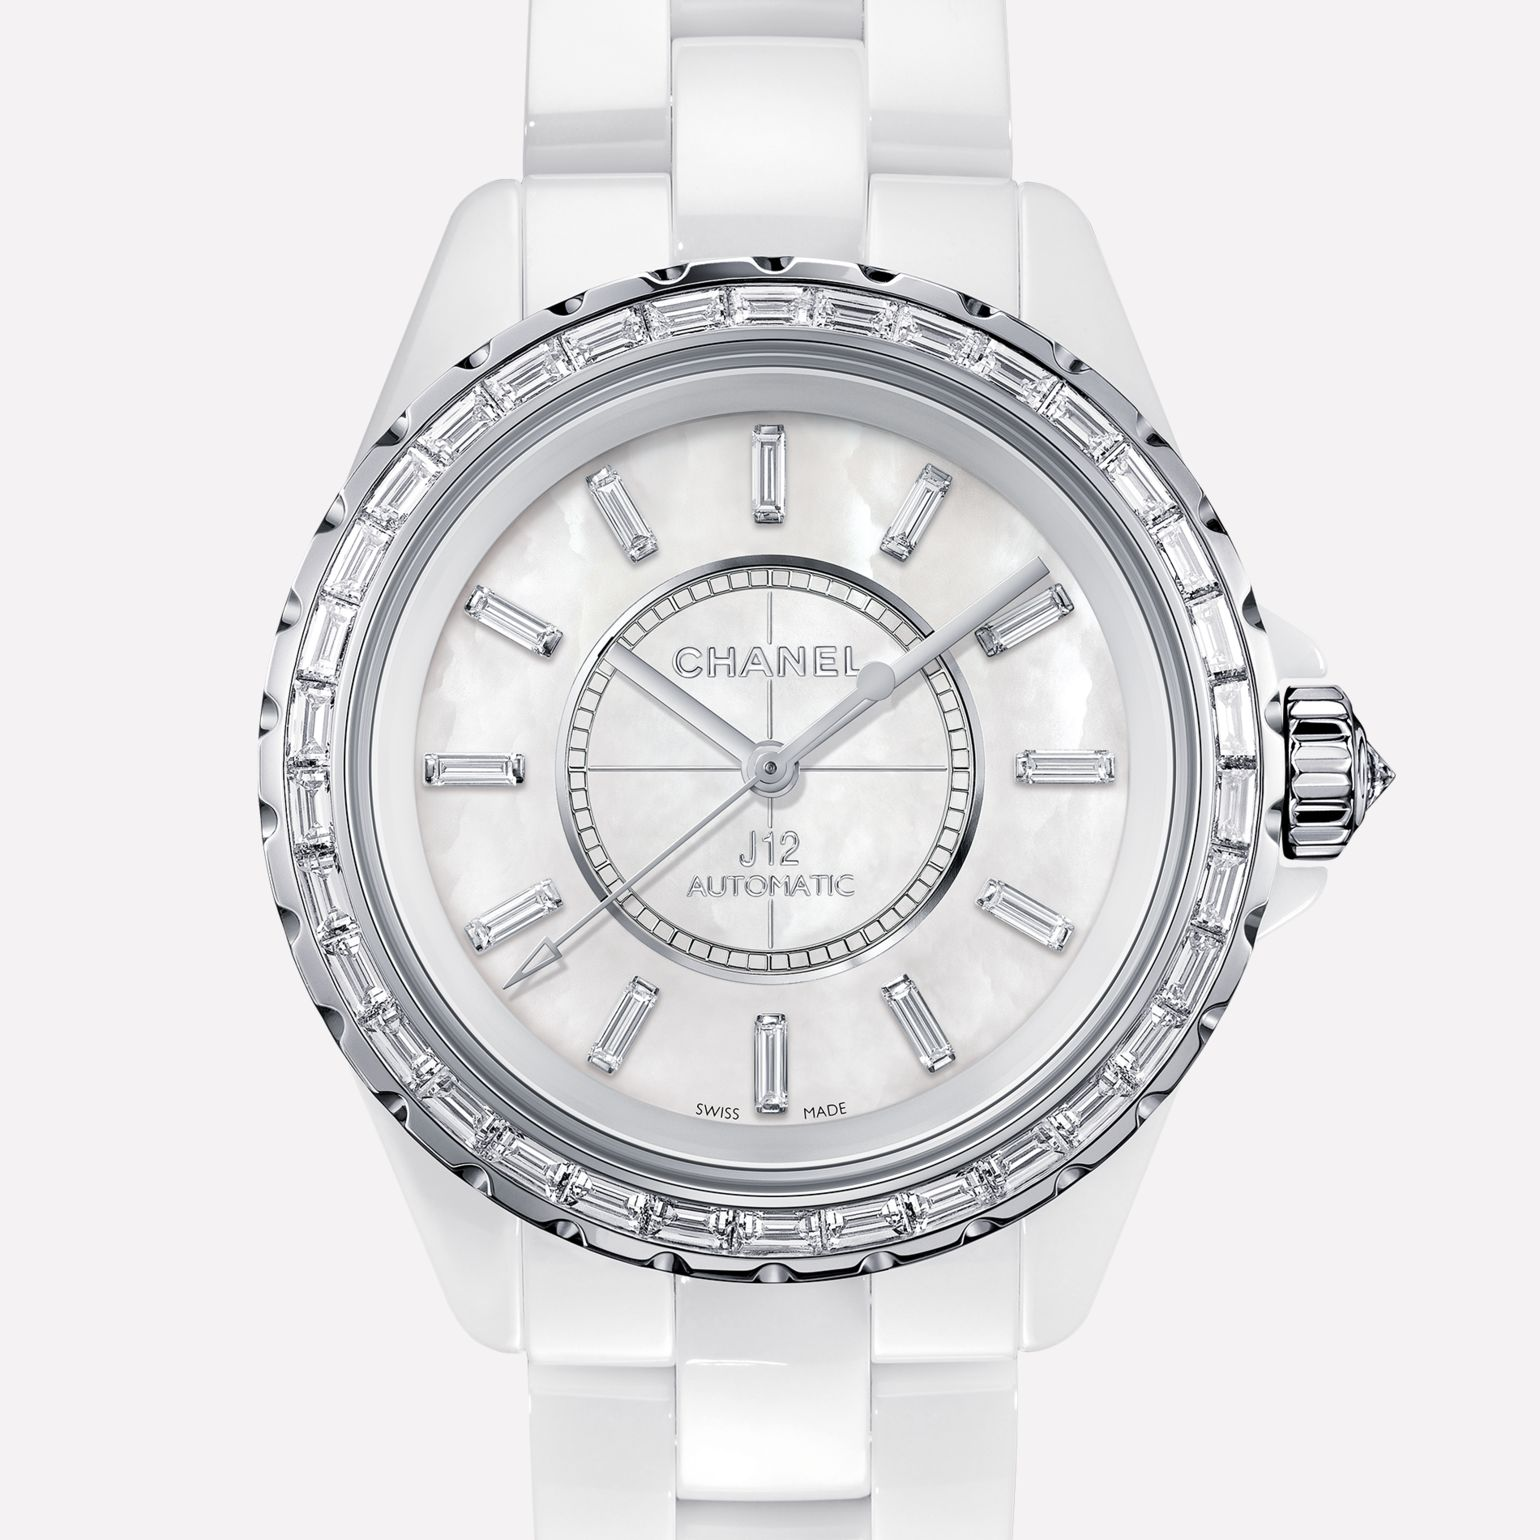 J12 Jewellery Watch White ceramic and white gold, bezel and indicators with baguette cut diamonds